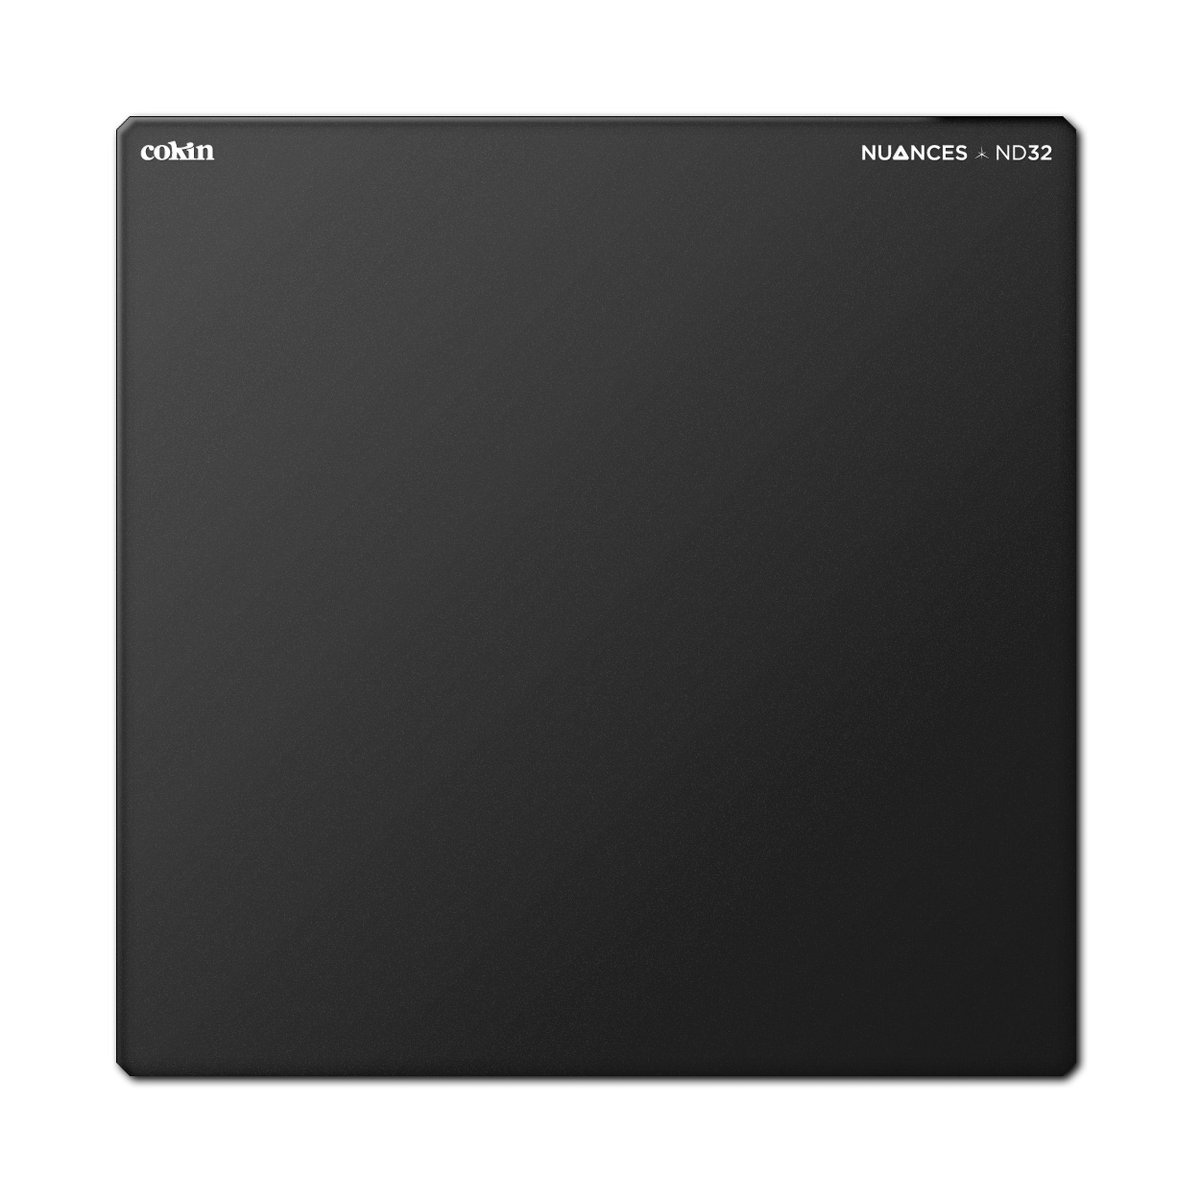 Cokin Nuances ND32 - 5-Stop Neutral Density XL (X) Filter